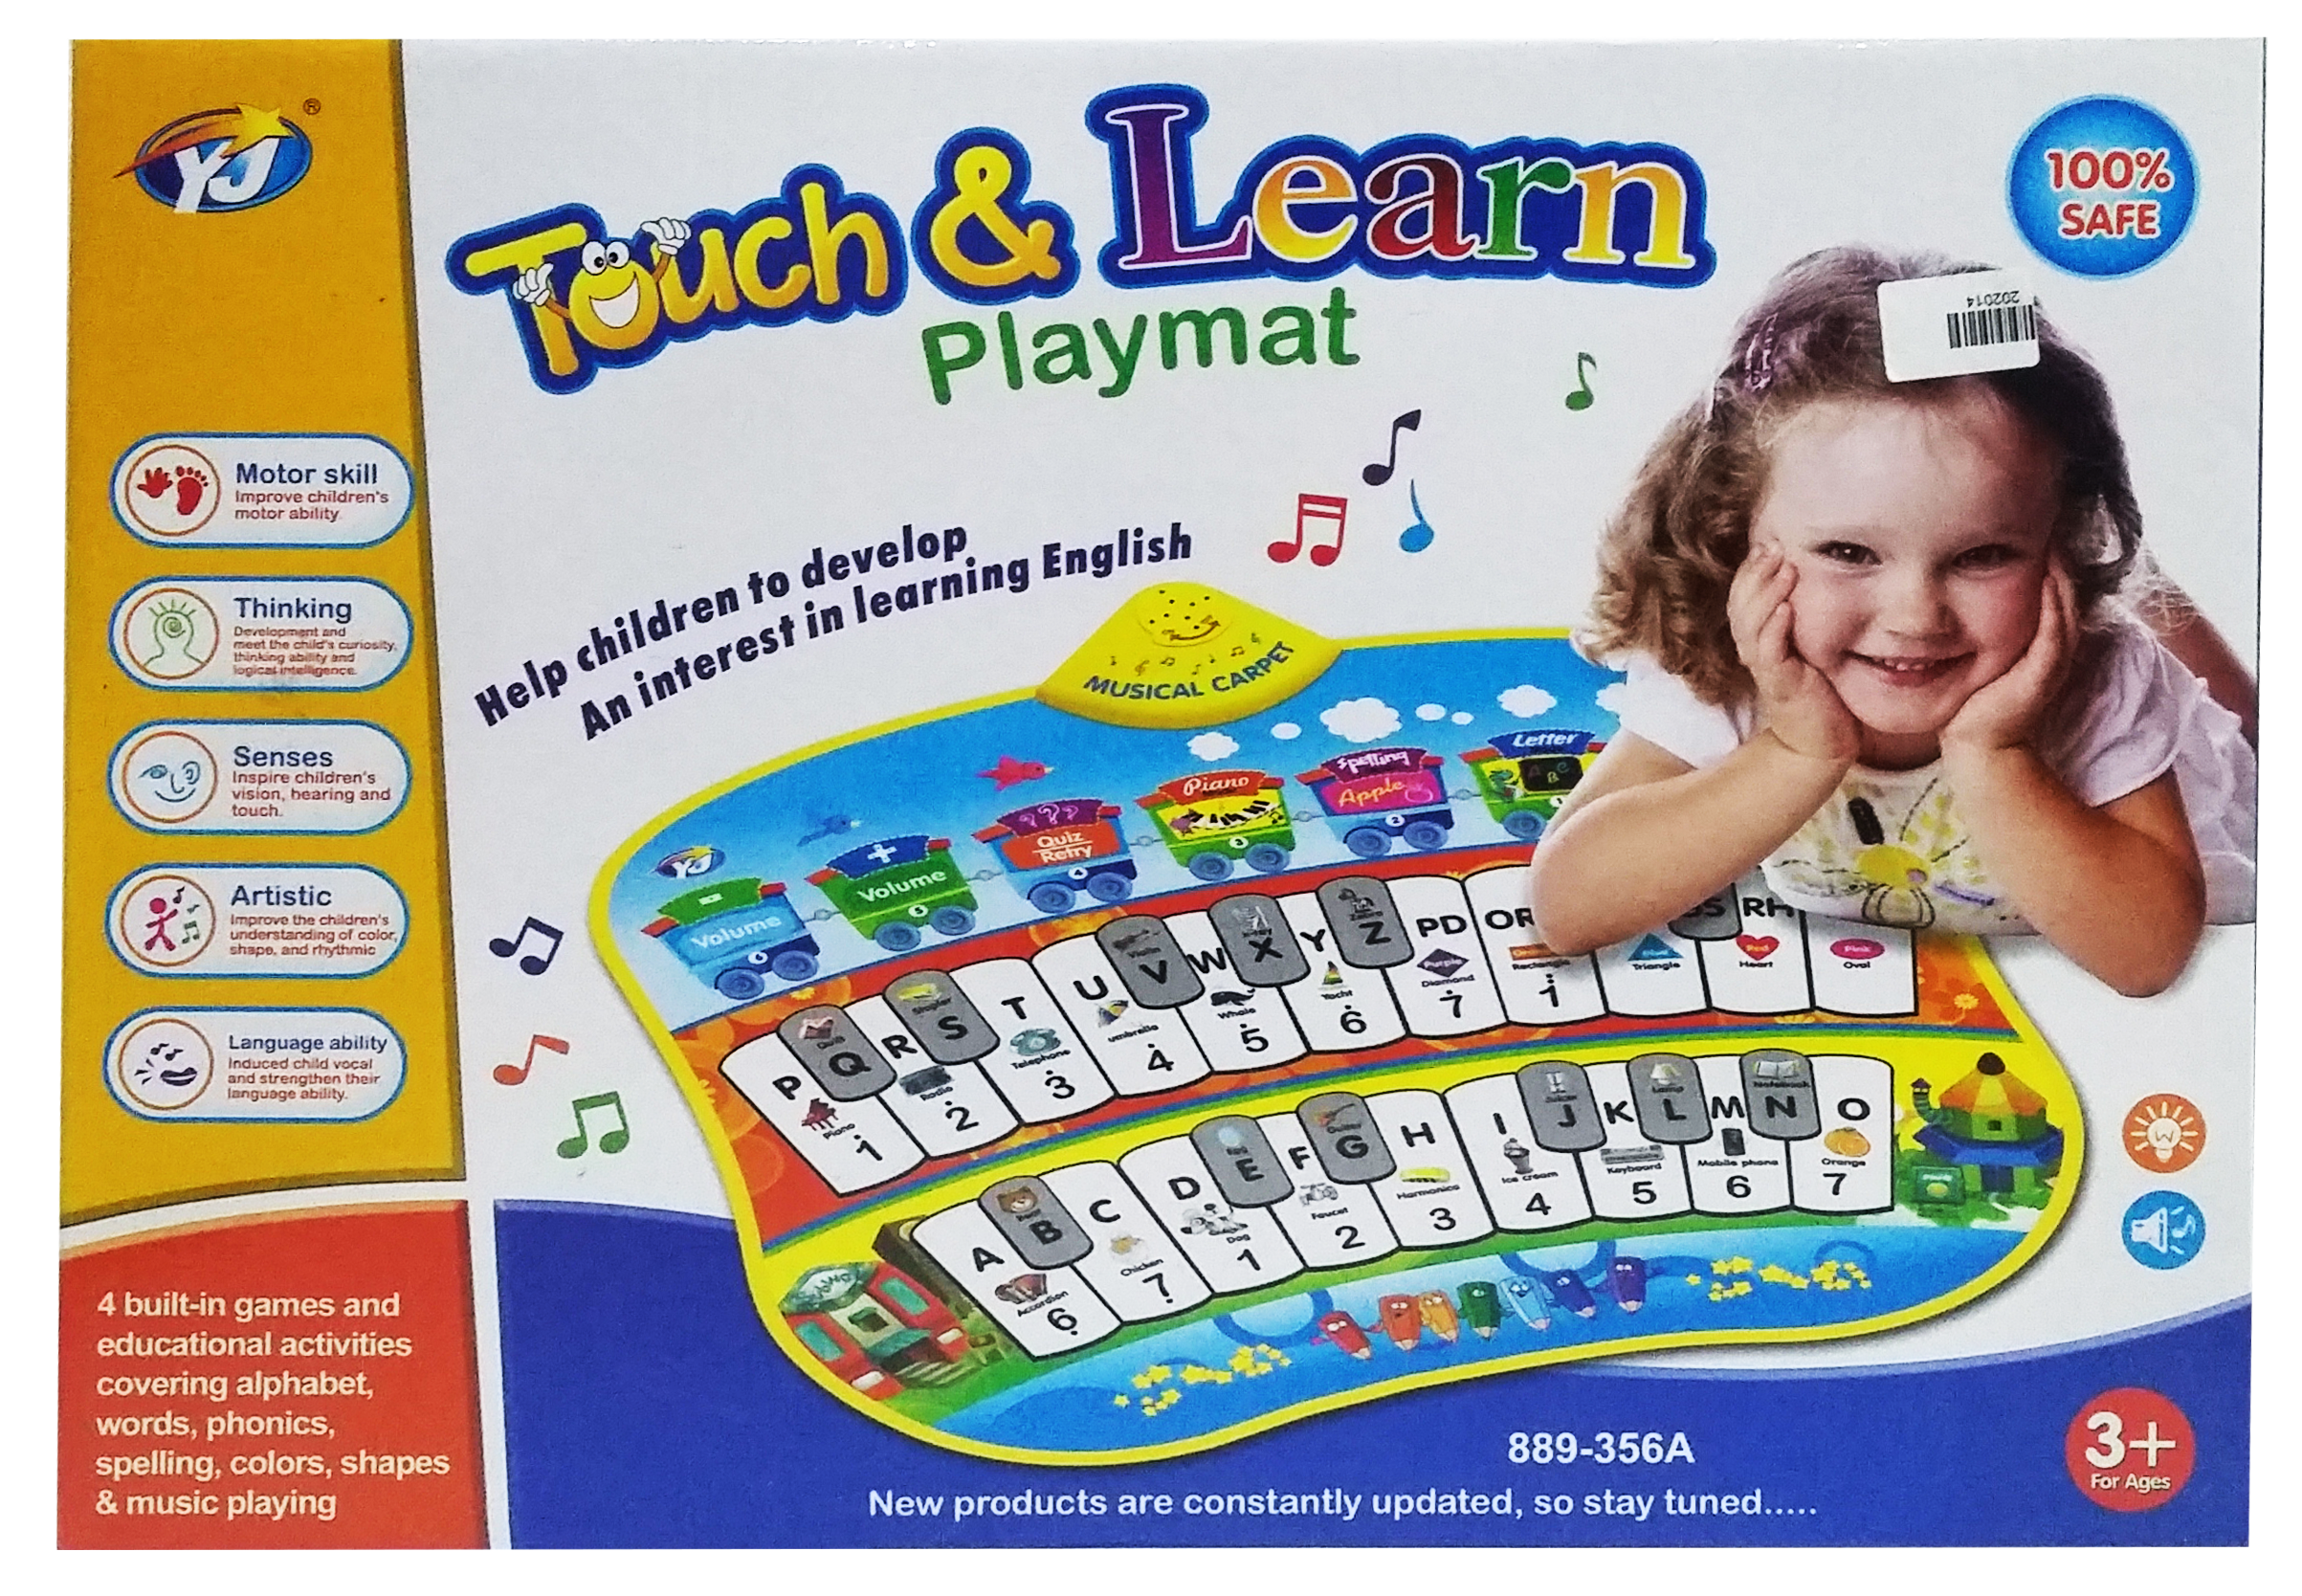 Touch & learn Play mat - 889-356A